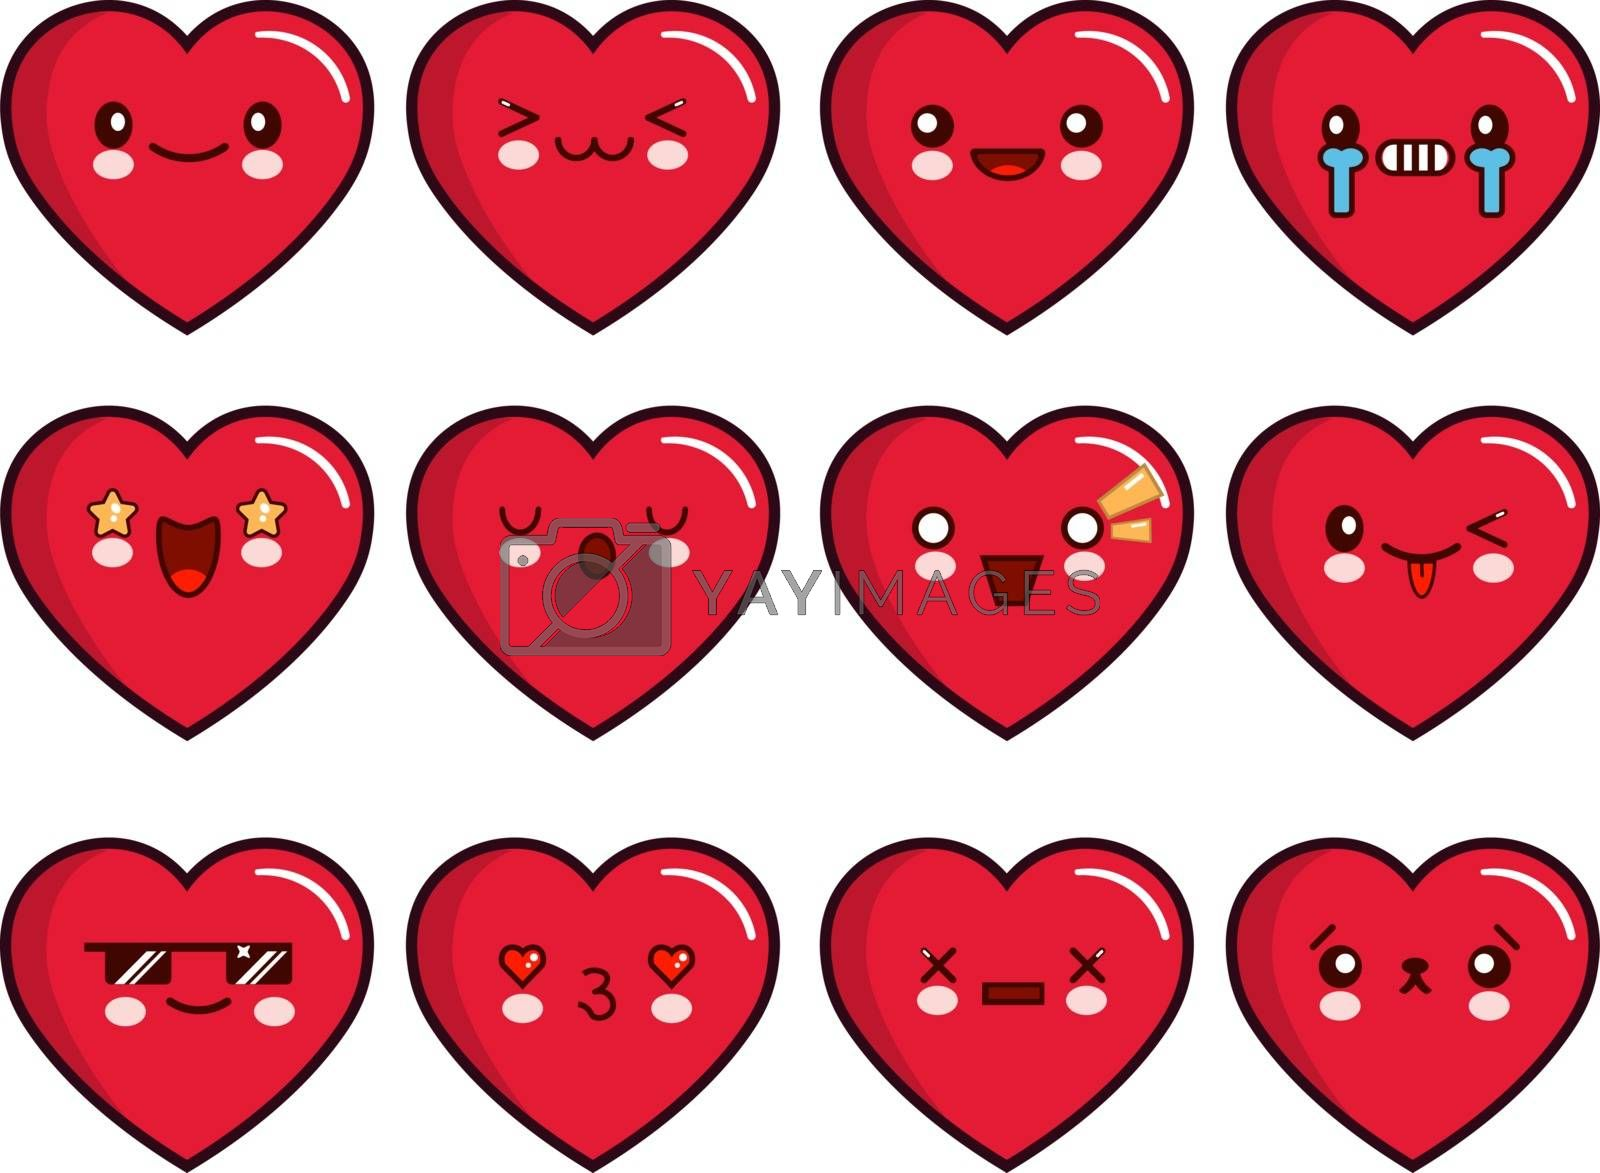 Heart emoticons set. Smiley icons vector set. Happy, sad, upset, crying, love, cool, star kiss sleepy and other emoticons llustration EPS